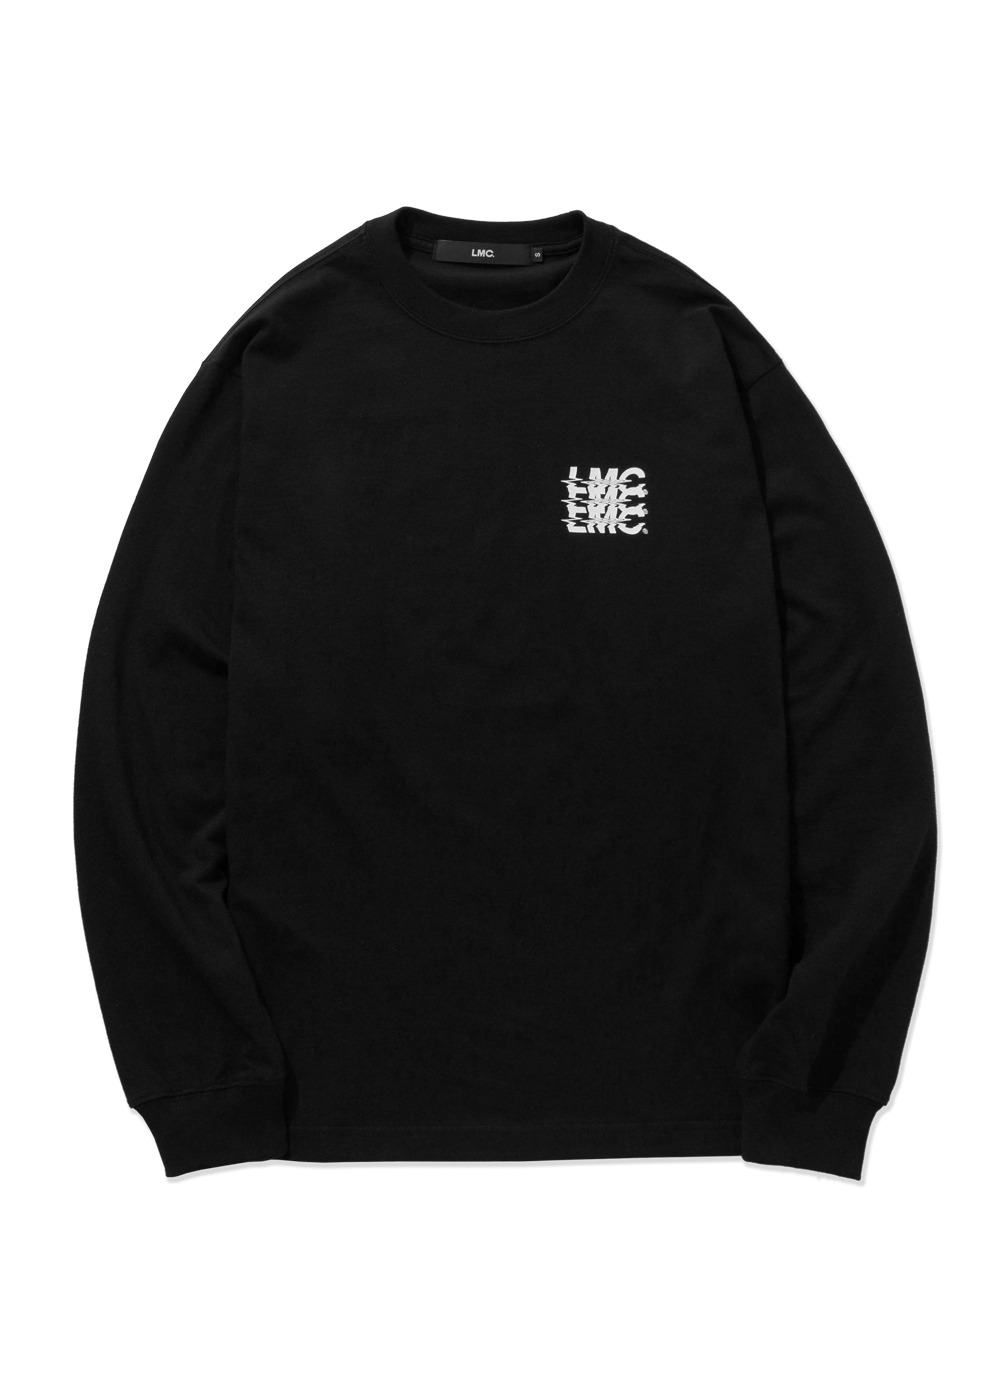 LMC NOISE LONG SLV TEE black